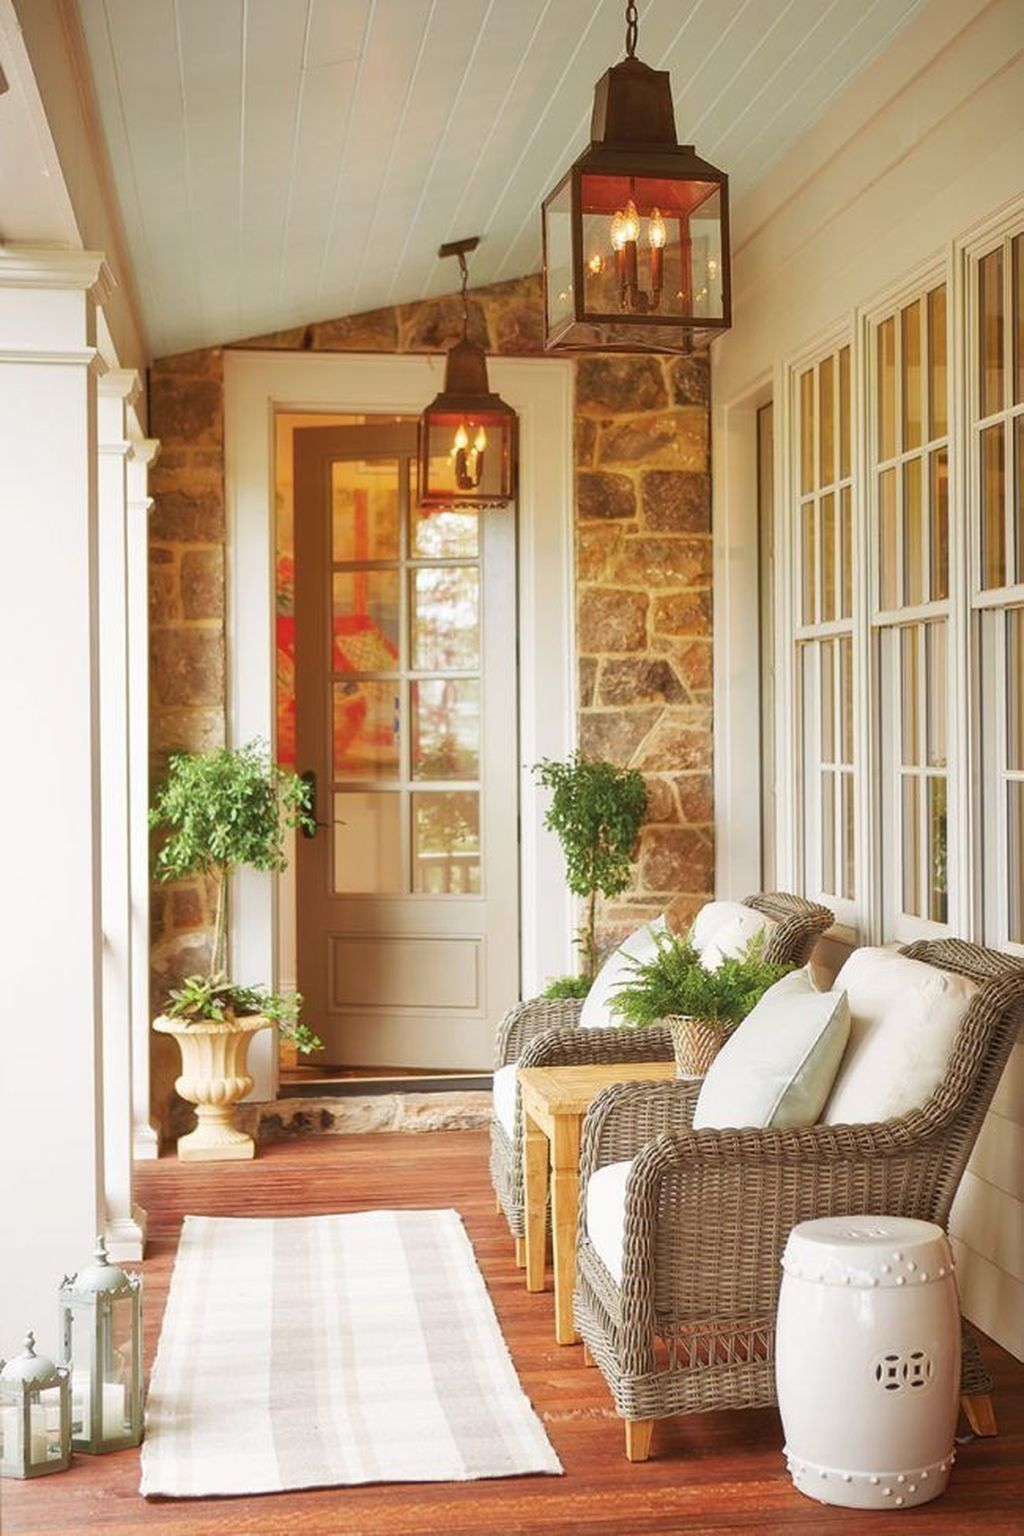 24 Genius Porches Patio Ideas To Make Beautiful Home Exterior In 2020 Small Front Porches Designs Front Porch Design House With Porch